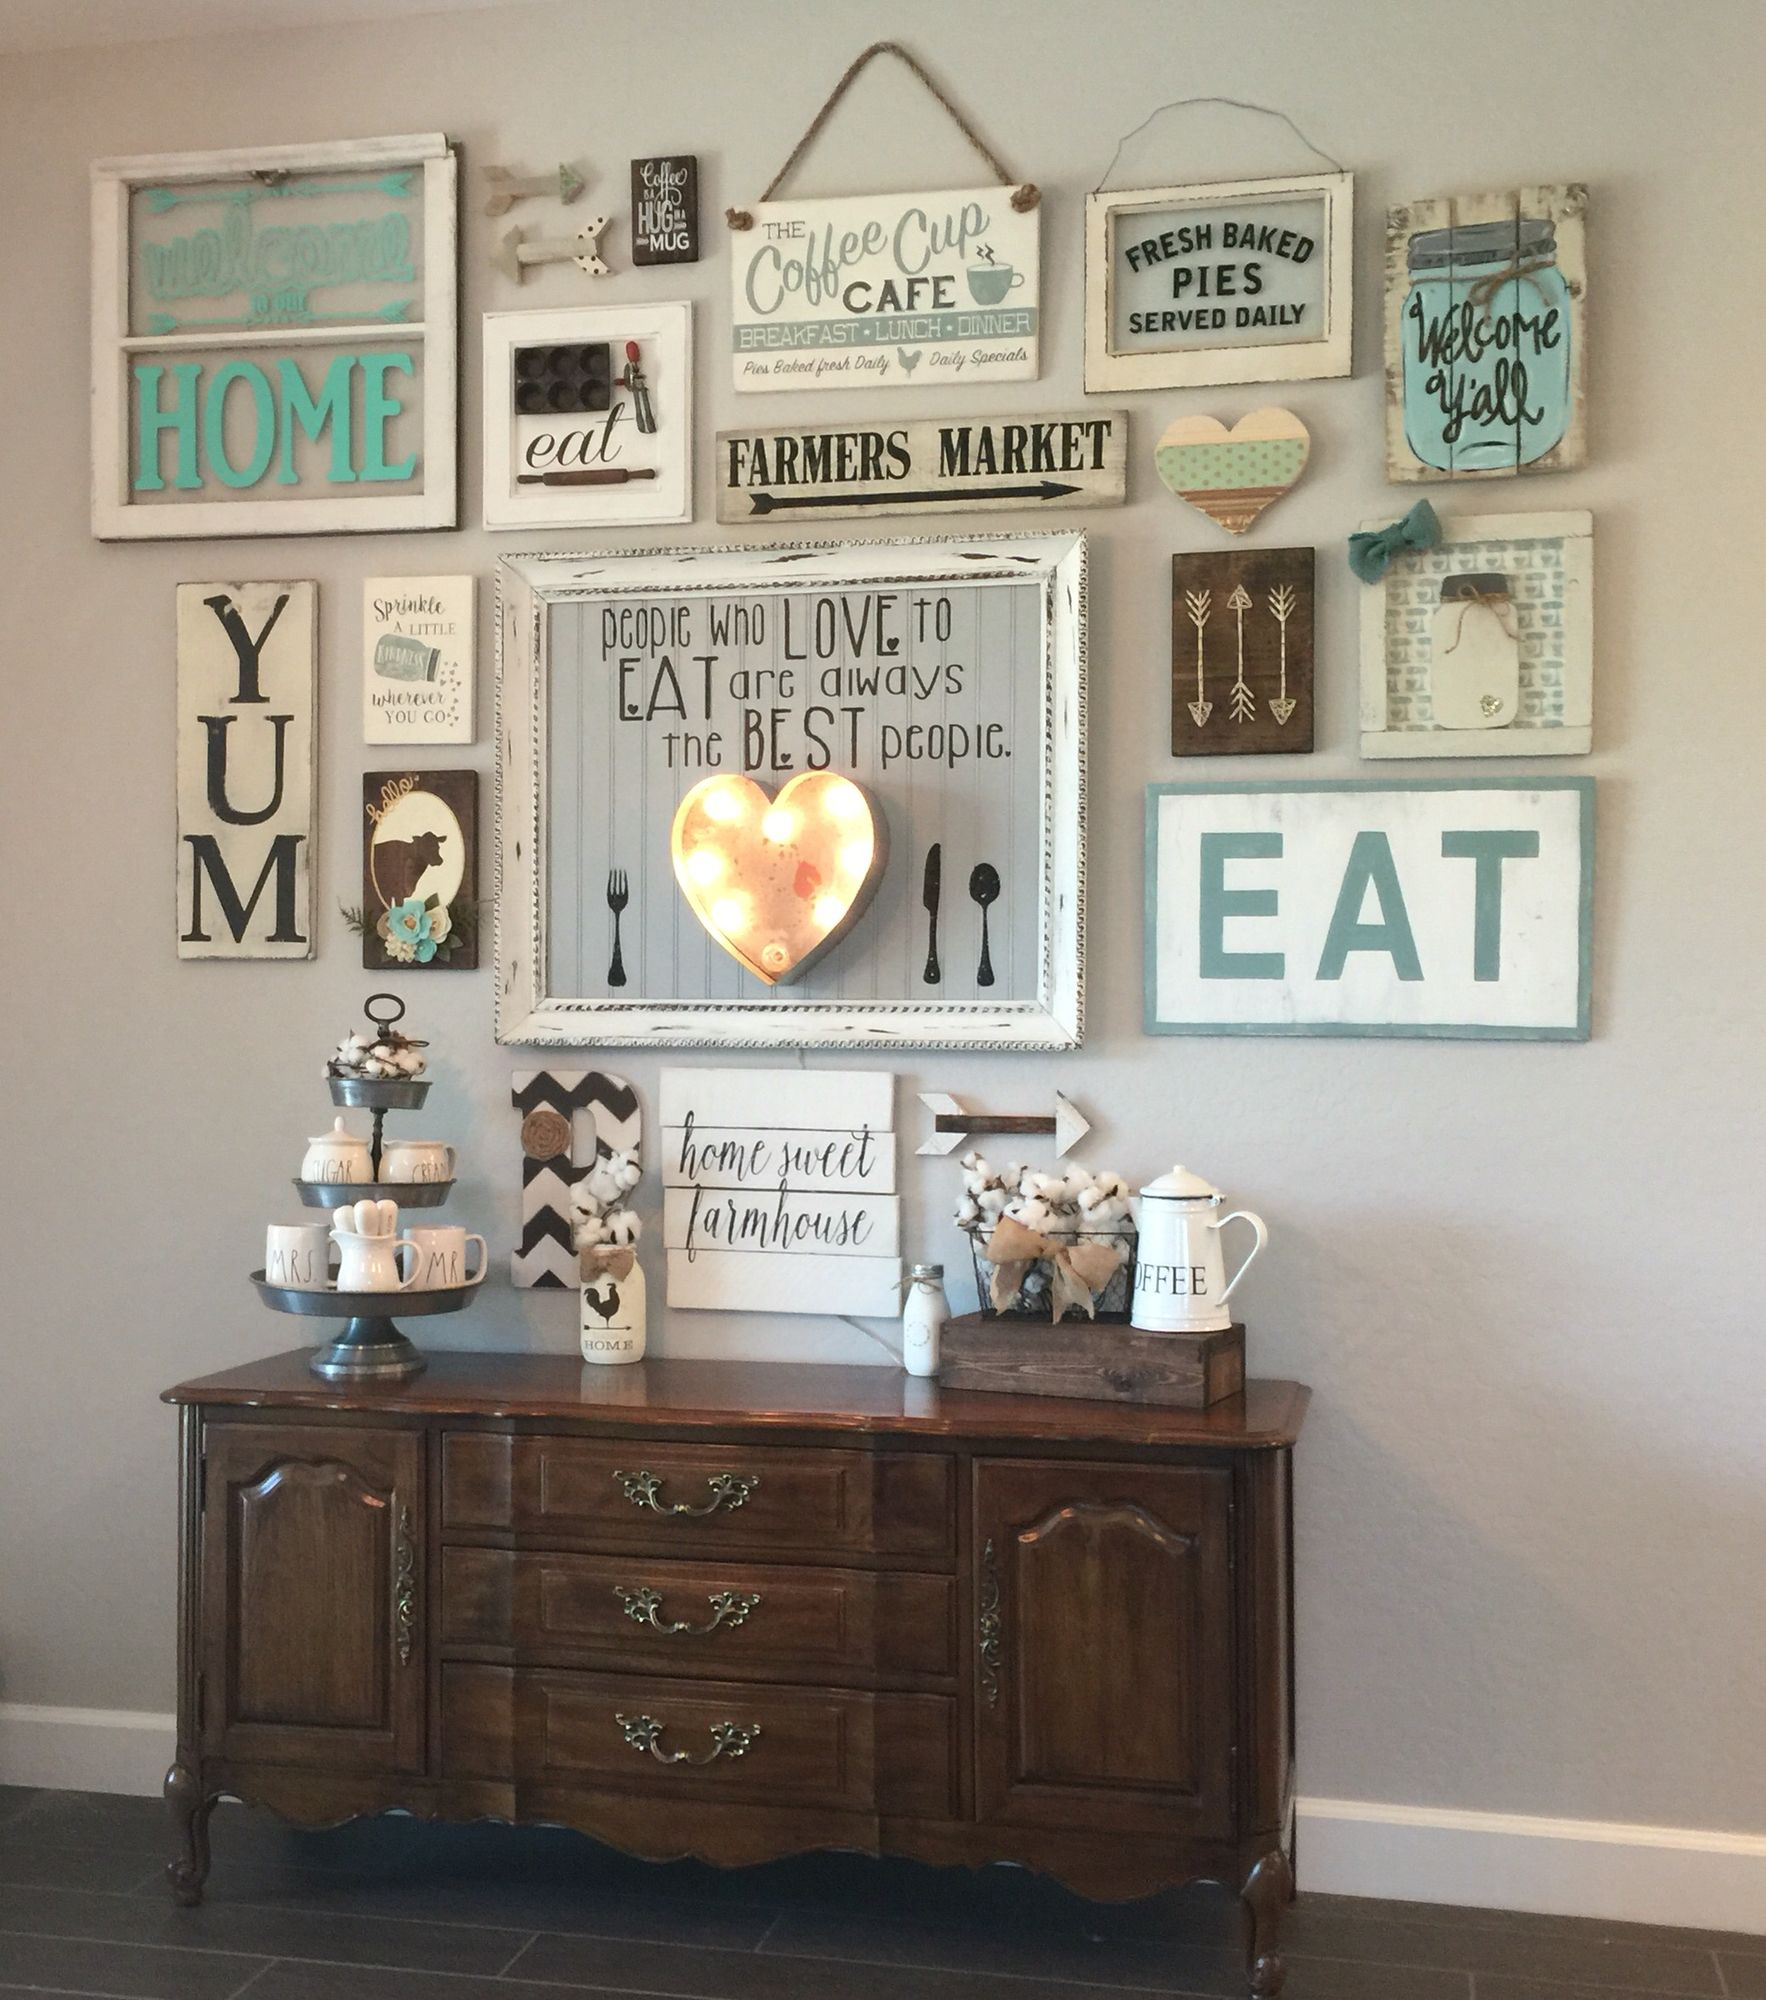 The House That Handmade Built™ On Instagram: U201cI Had A Family Friend  Encourage Me To Post My Kitchen Gallery Wall And Share It On #Pinterest 🙈  Why Am I So ...